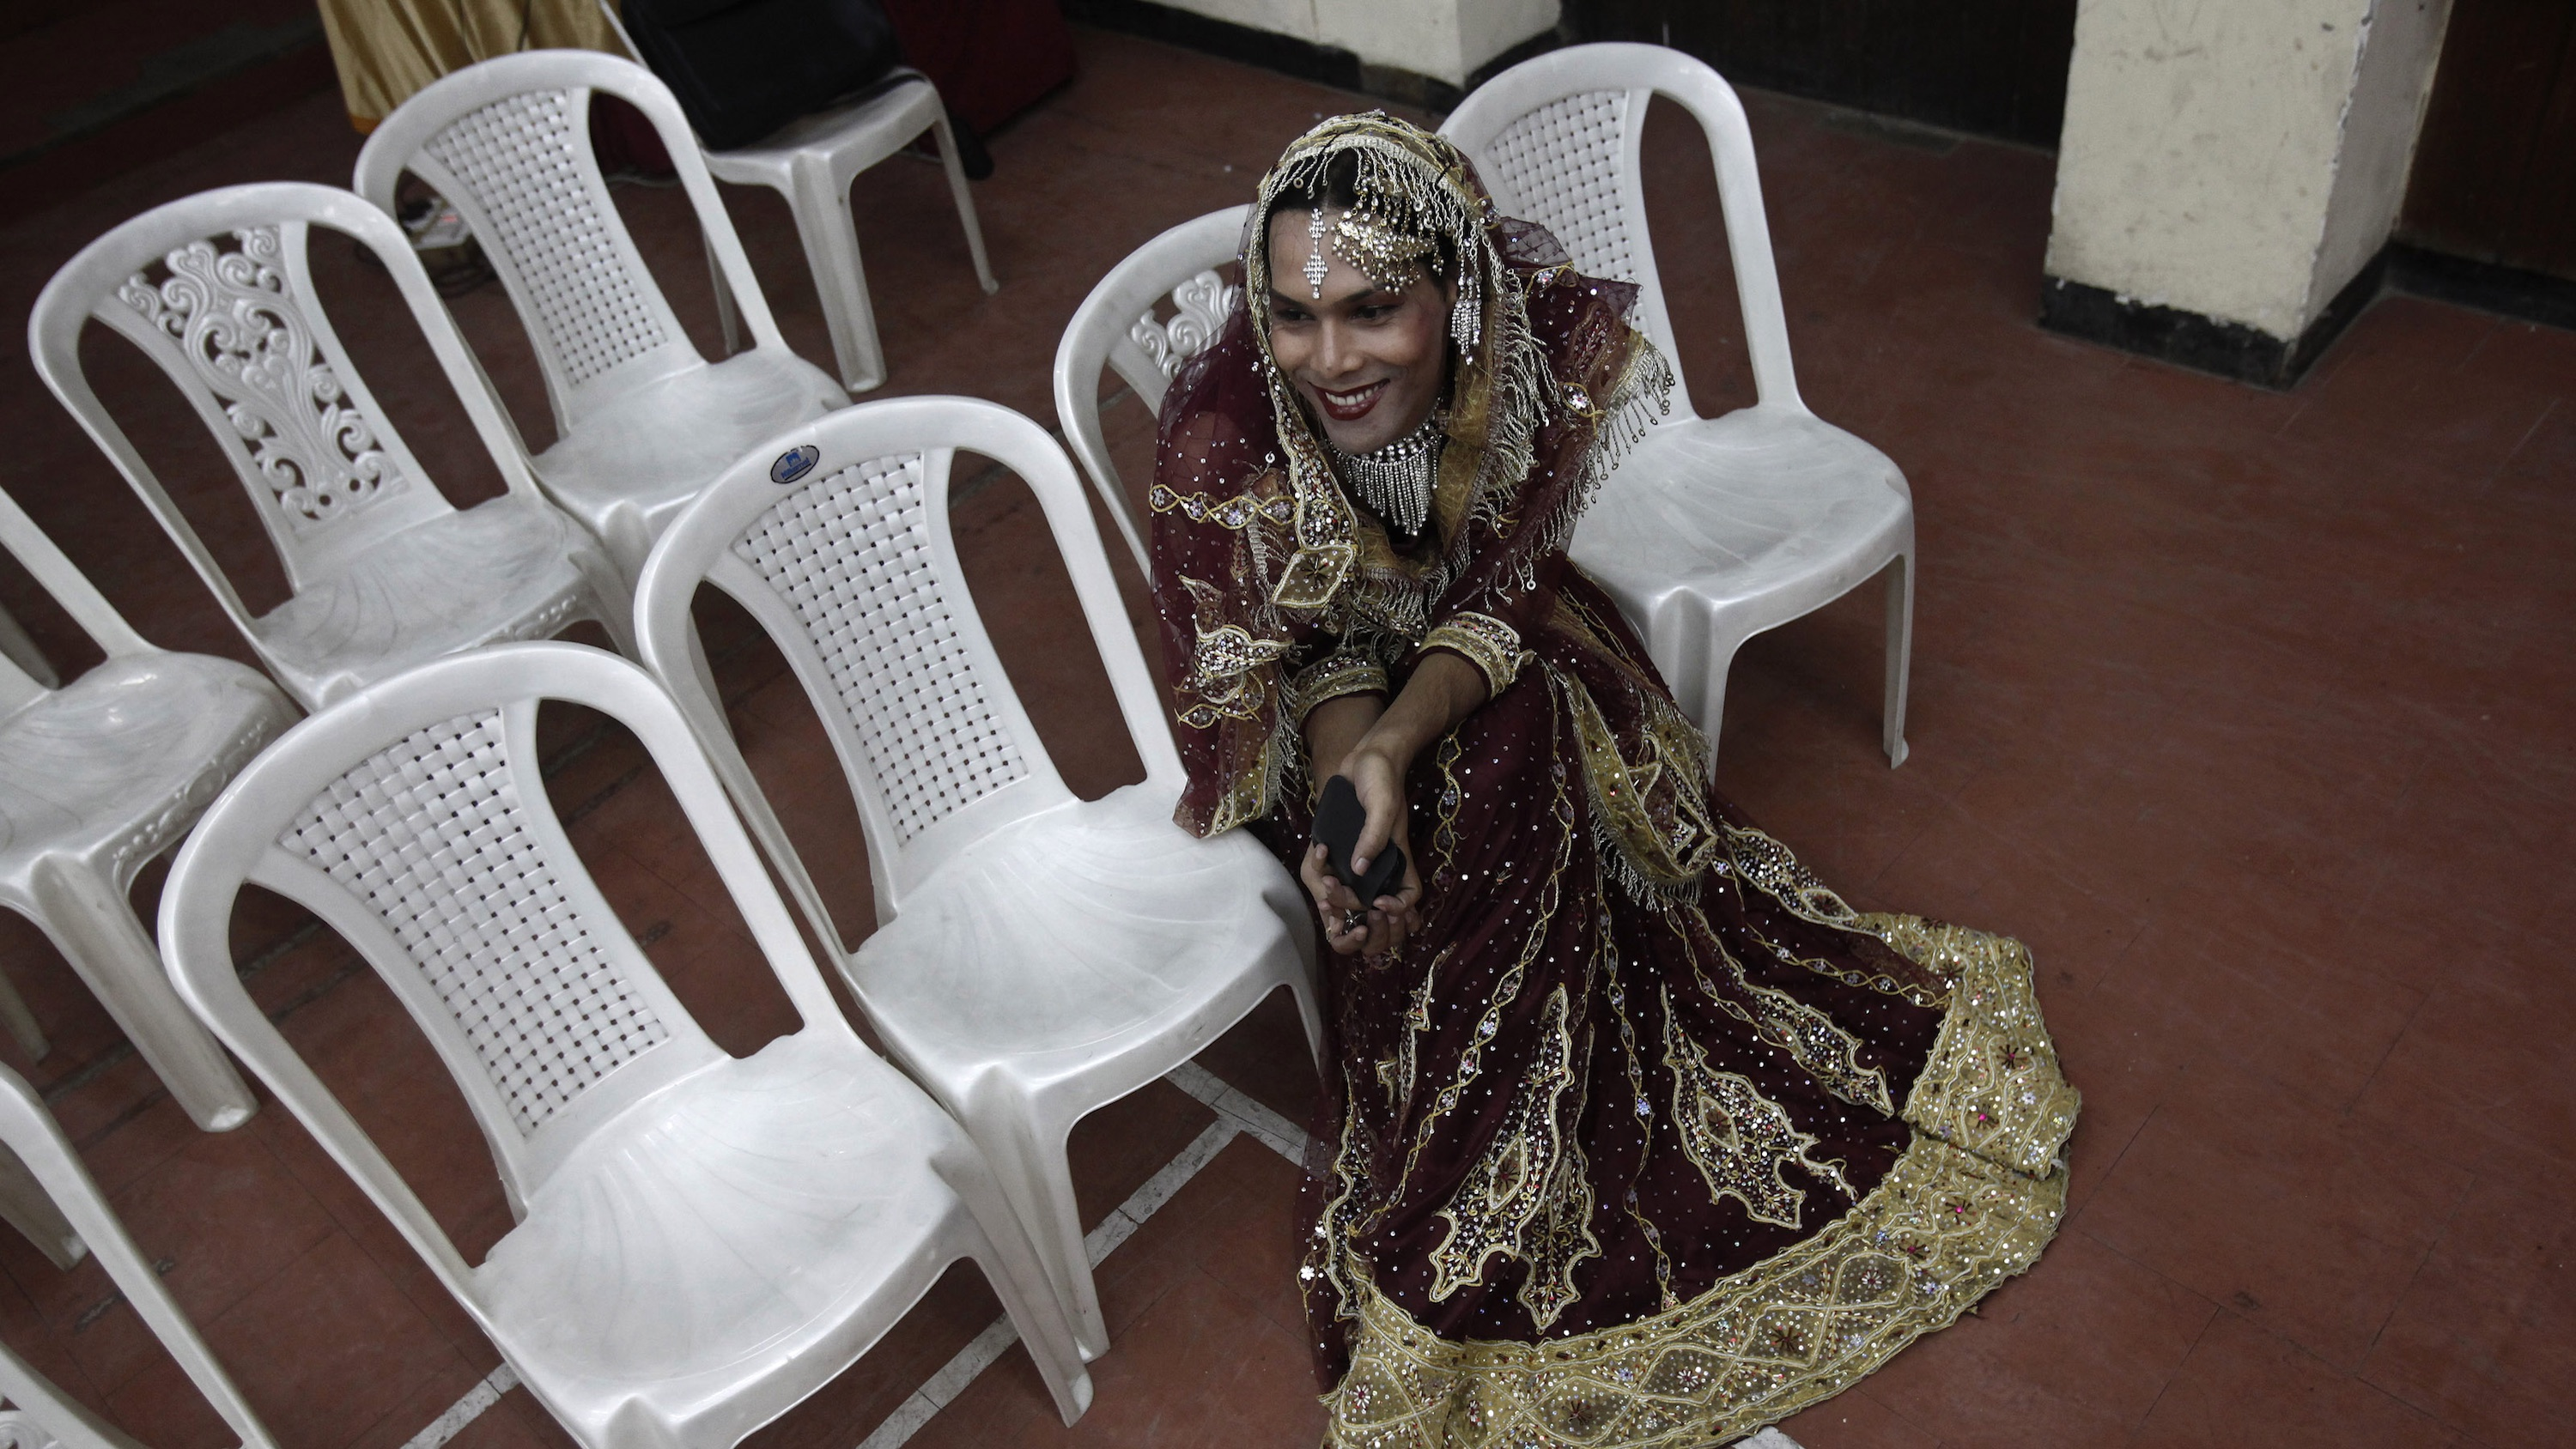 A hijra waits for her dance at a national hijra festival in New Delhi, India.